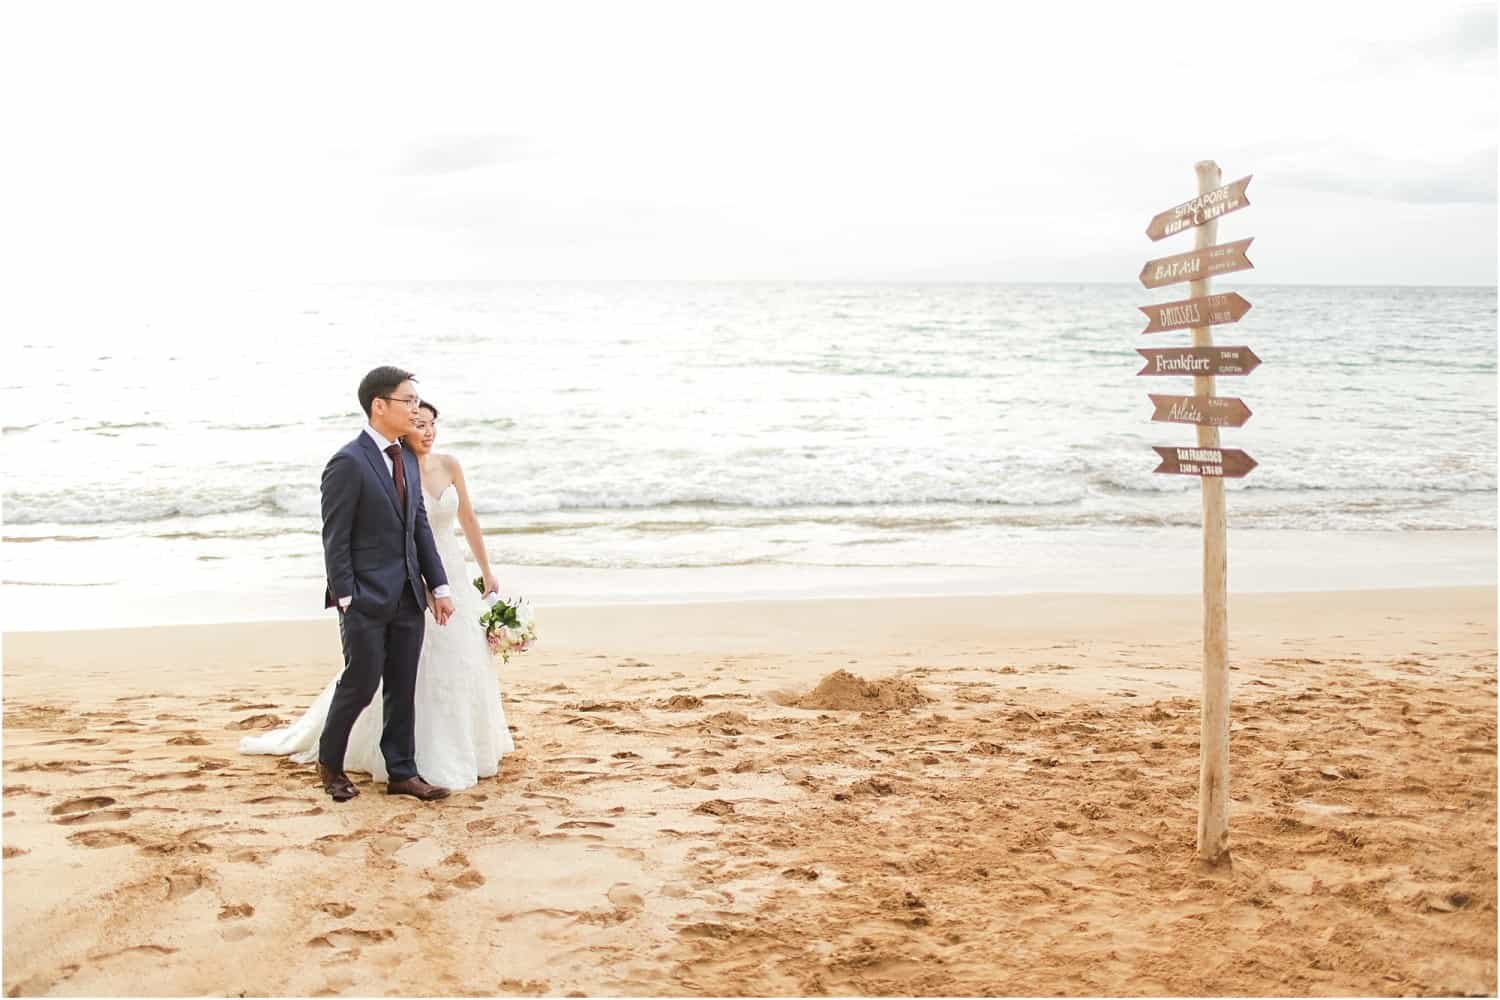 Maui elopement by Love and Water Photography and Maile Maui Weddings at Palauea Beach